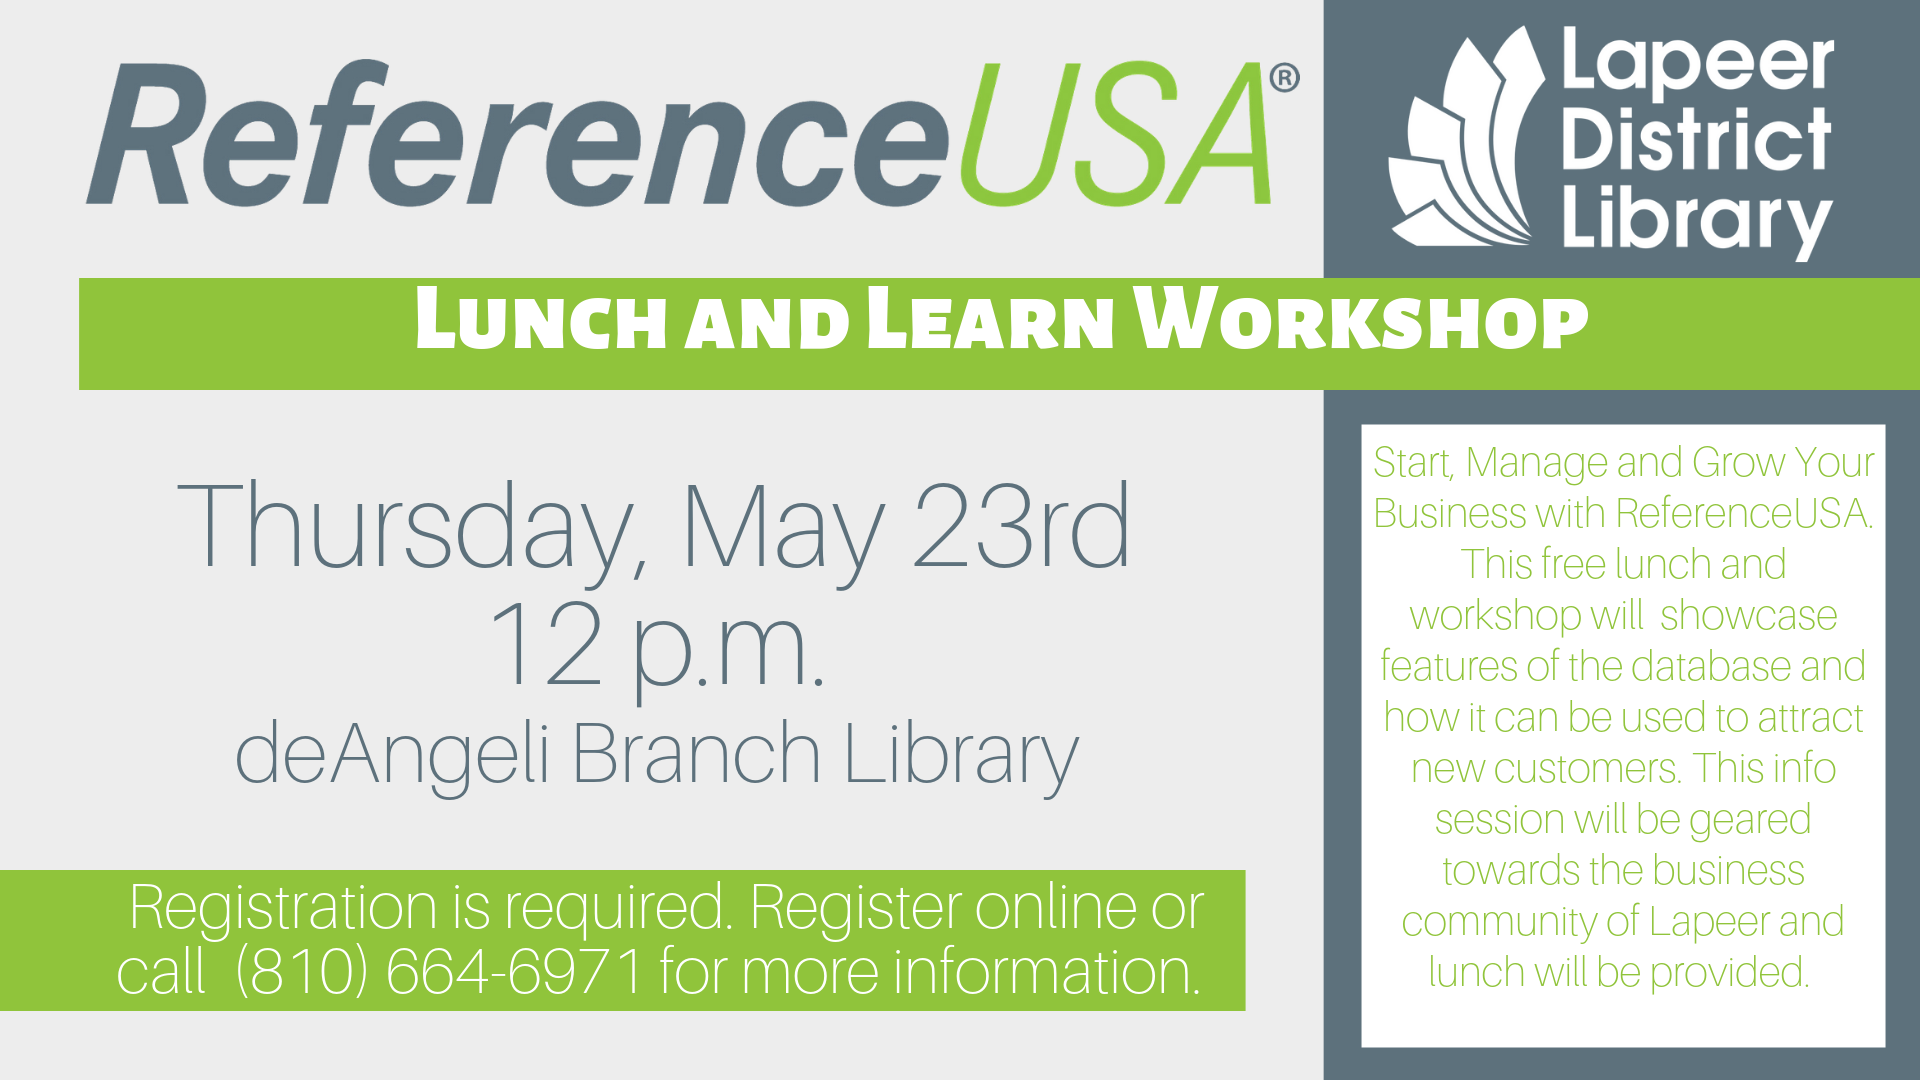 Start, Manage and Grow Your Business with ReferenceUSA